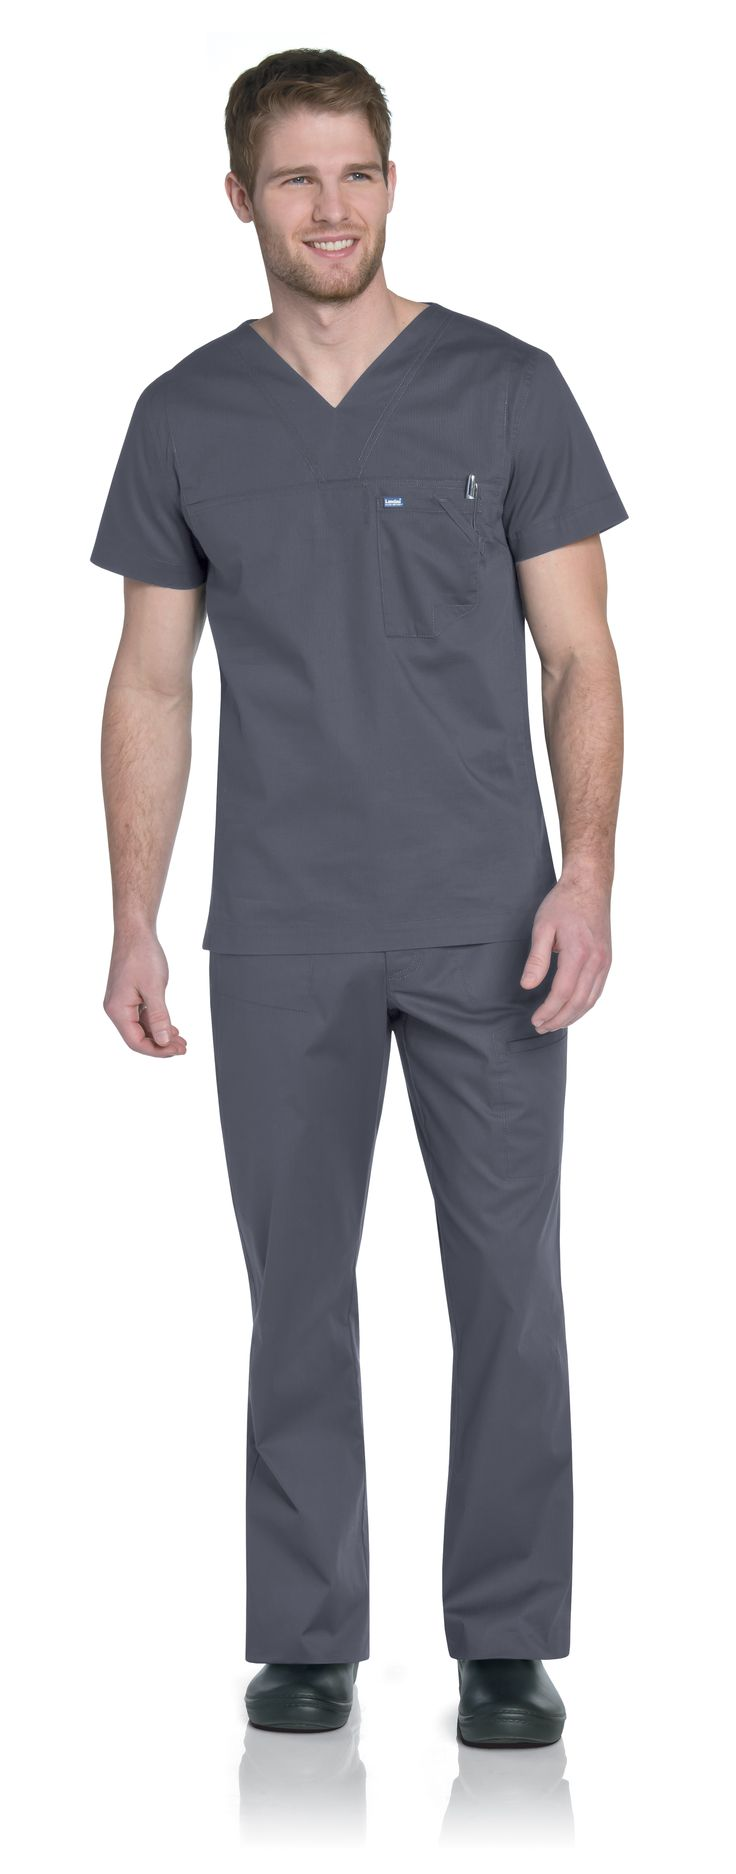 17 Best Images About Men 39 S Scrub Styles On Pinterest Polos Tunics And Stretch Tops